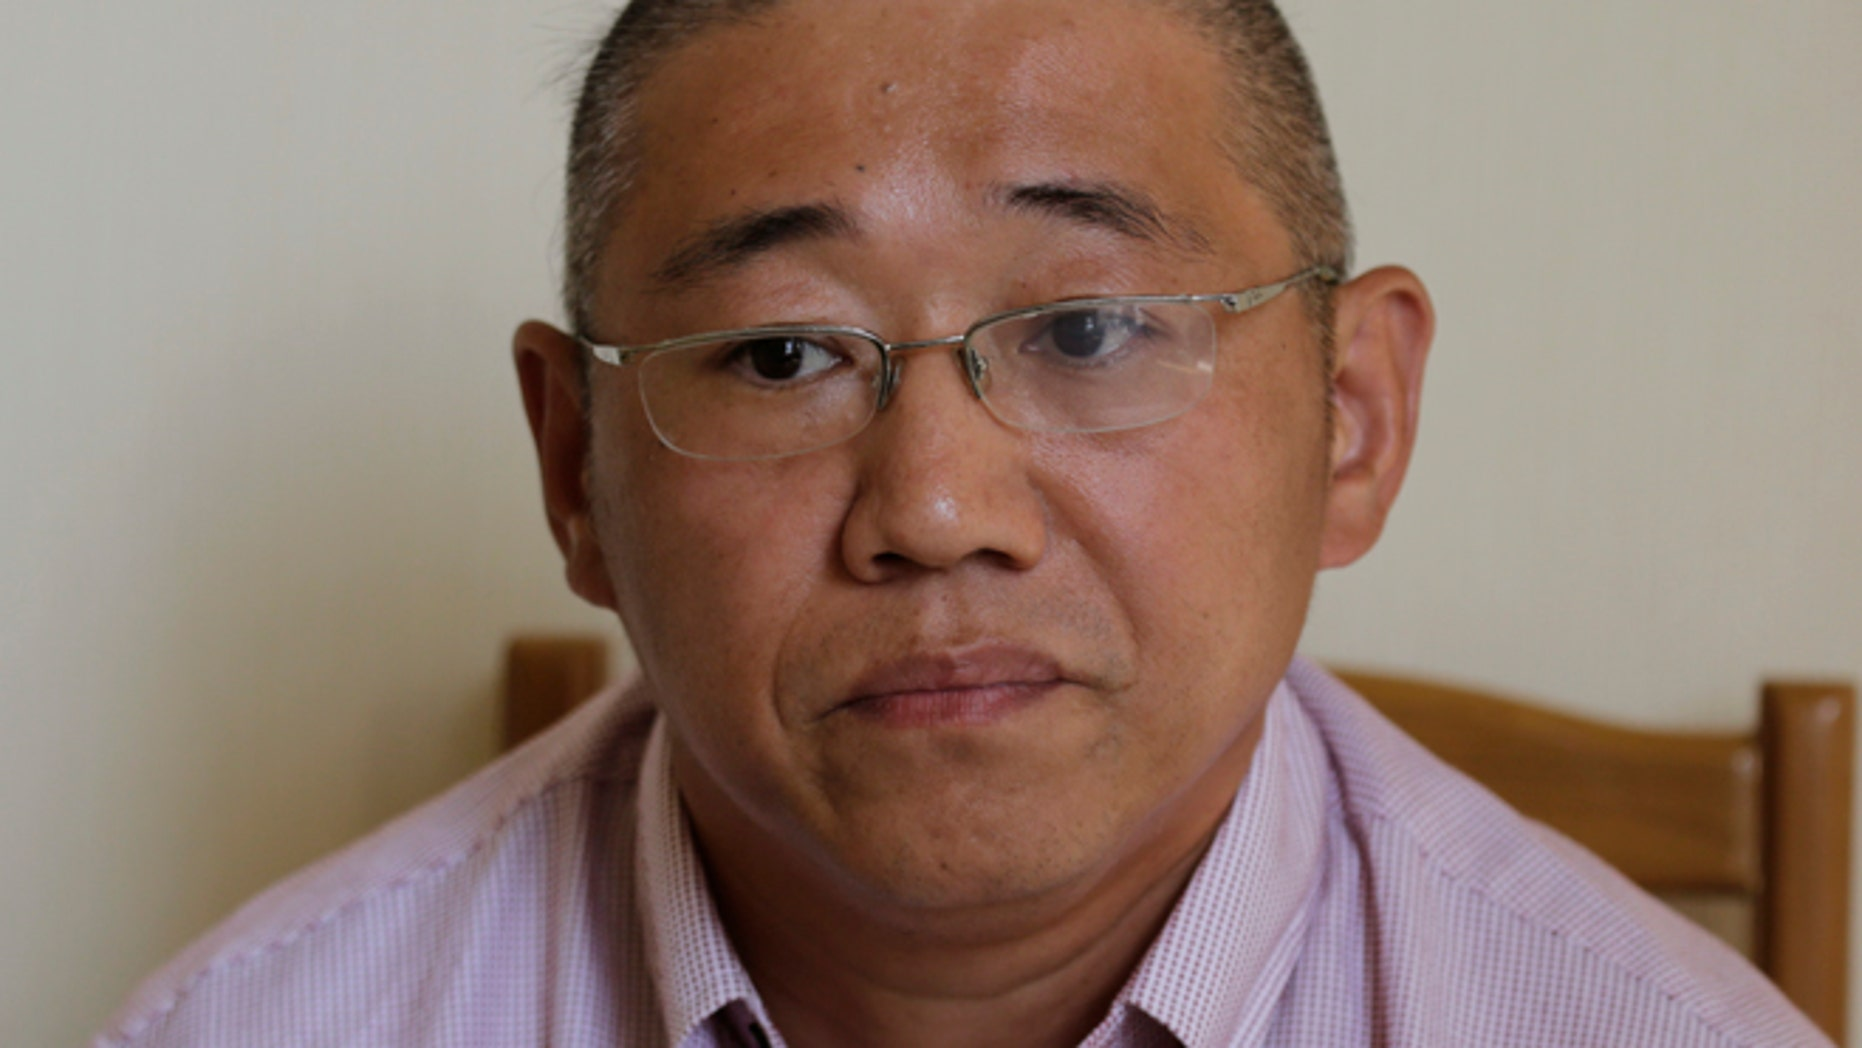 Sept. 1, 2014: Kenneth Bae, an American tour guide and missionary detained in North Korea, serving a 15-year sentence,  speaks to The Associated Press in Pyongyang, North Korea